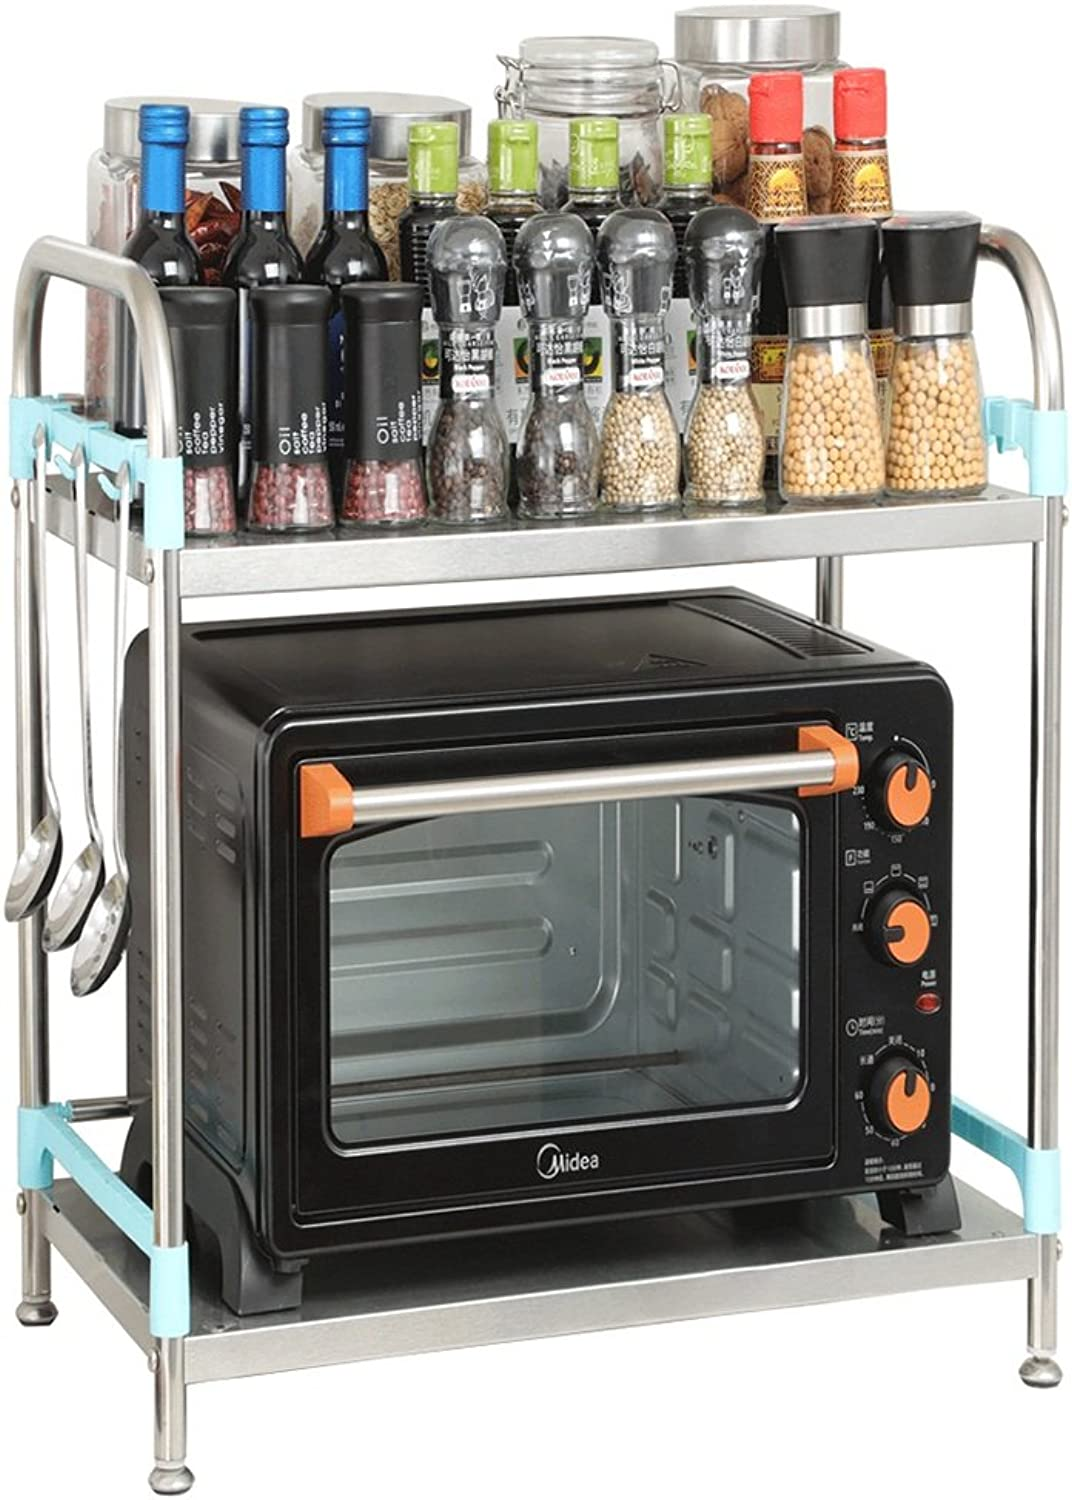 Kitchen Shelves - Stainless Steel Microwave Rack, Spices Rack, Oven Rack, Floor Storage Rack -by TIANTA (Size   40  35  53cm)